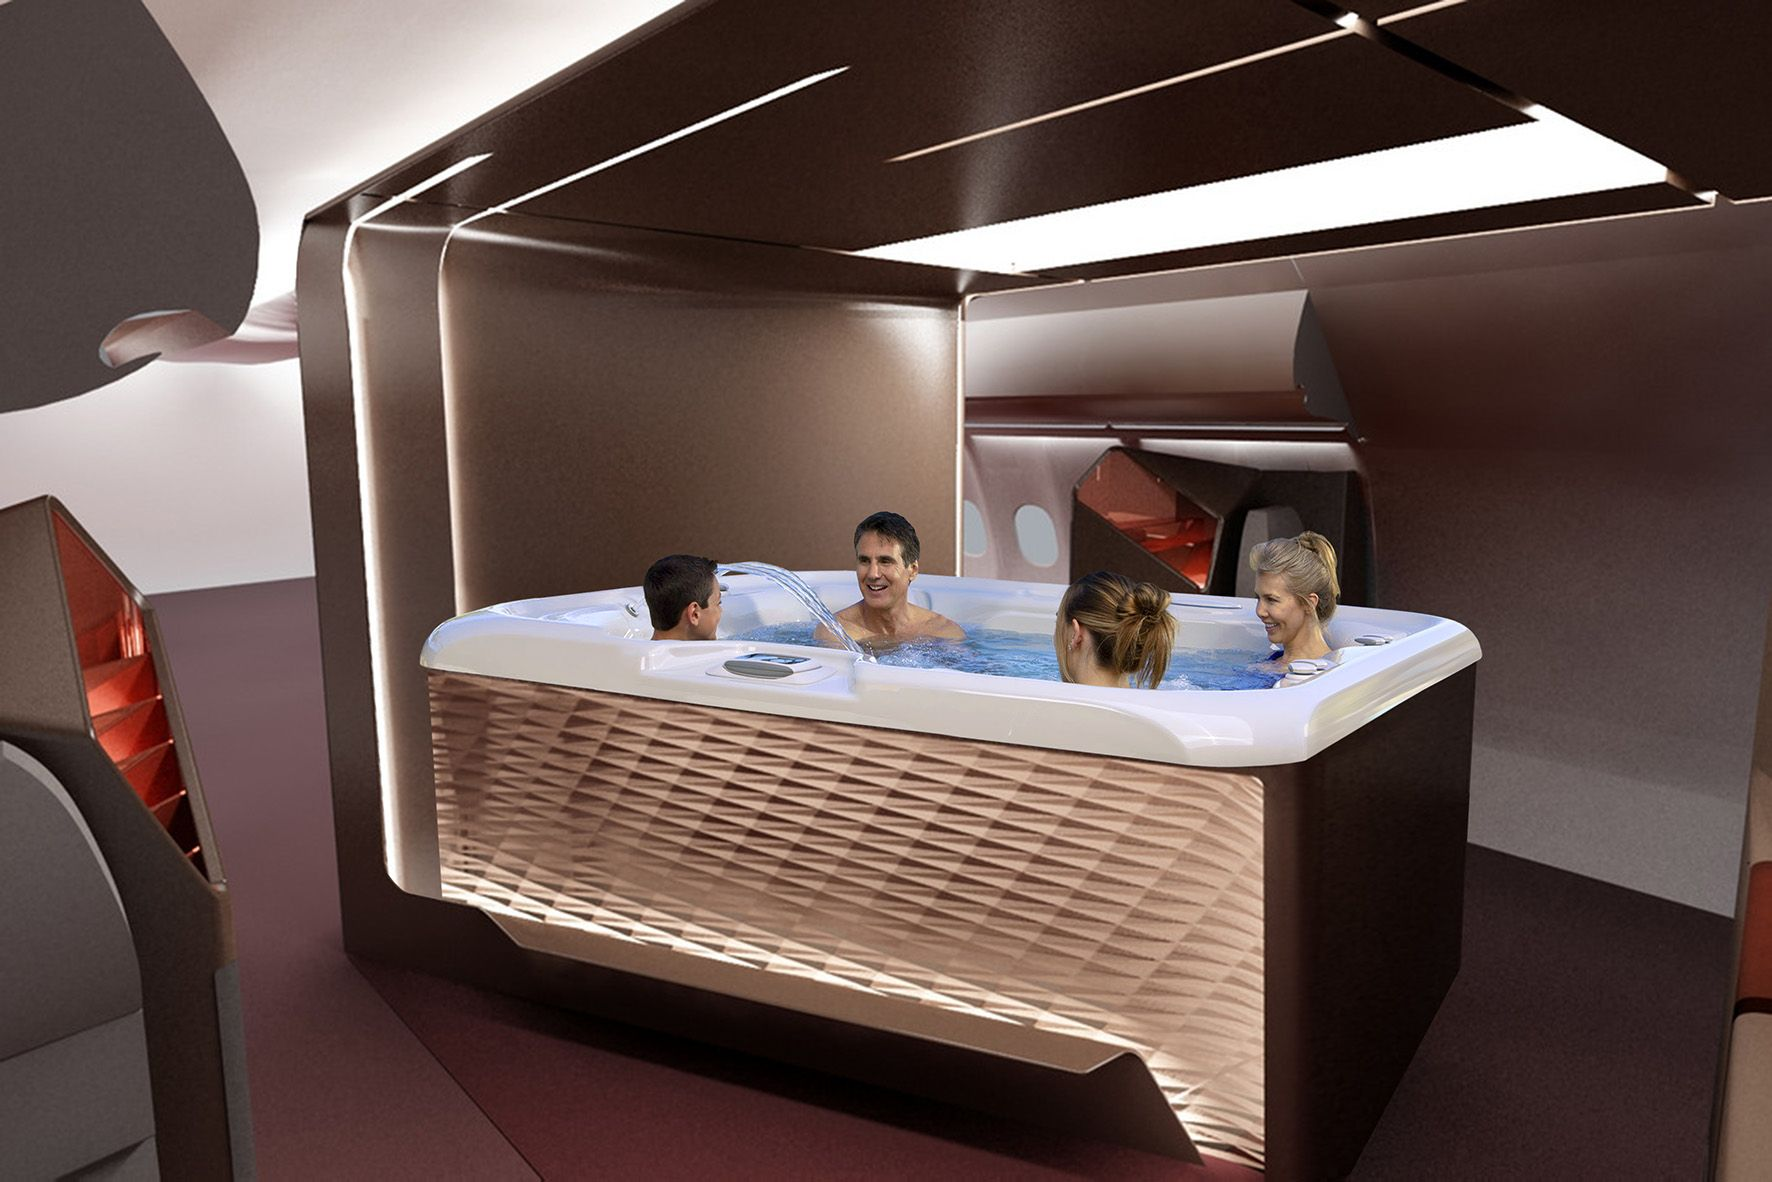 HotSpring Hot Tub in the Upper Class Lounge on a Virgin ...